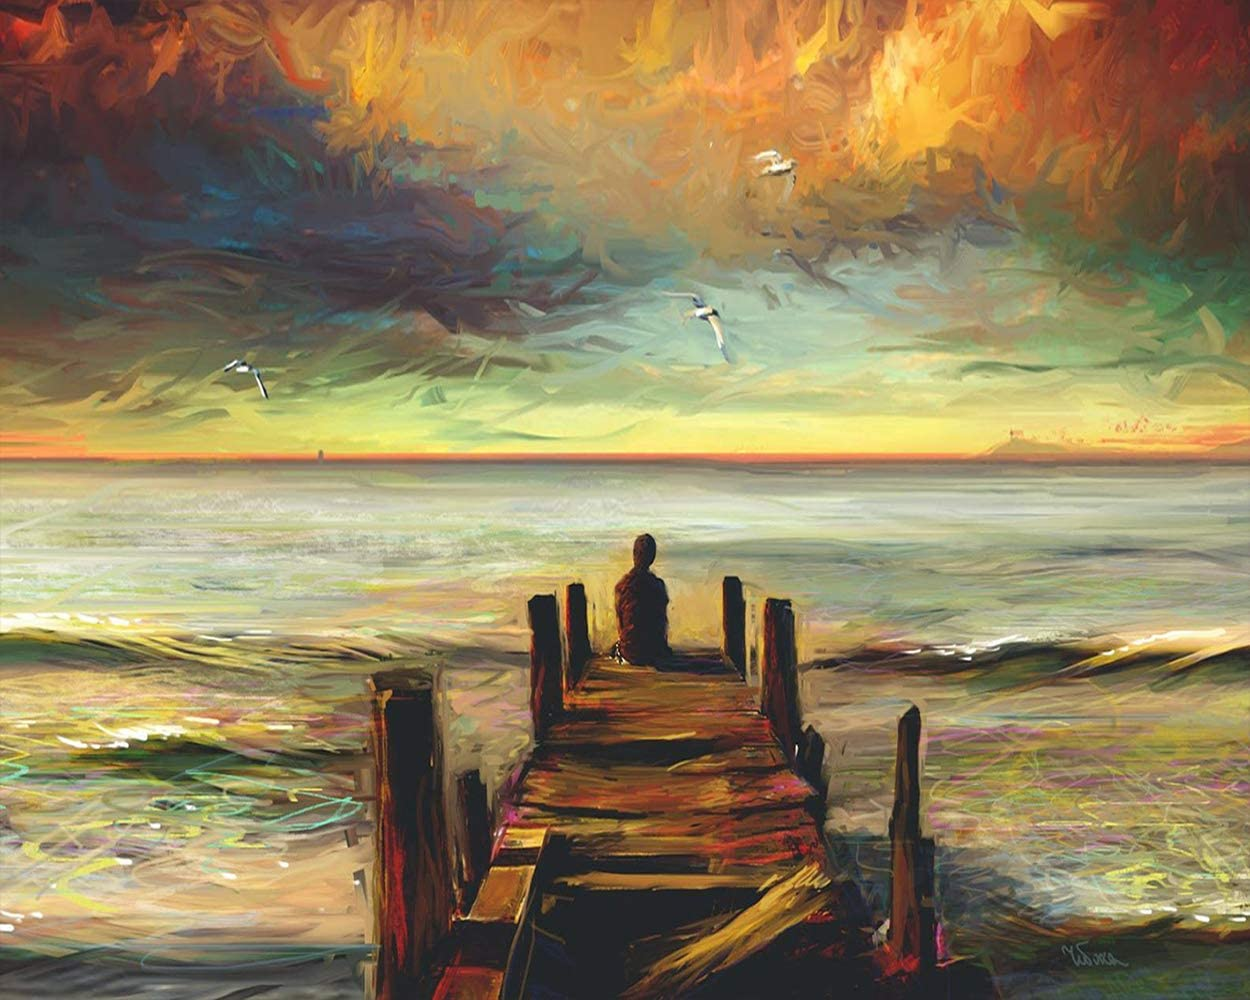 TUMOVO Beach Sunset Paint by Numbers Kits Lonely Back View DIY Painting by Numbers Seaside Landscape DIY Canvas Painting by Numbers Pier Acrylic Painting Arts Crafts for Home Wall Decor, 16x20 Inch